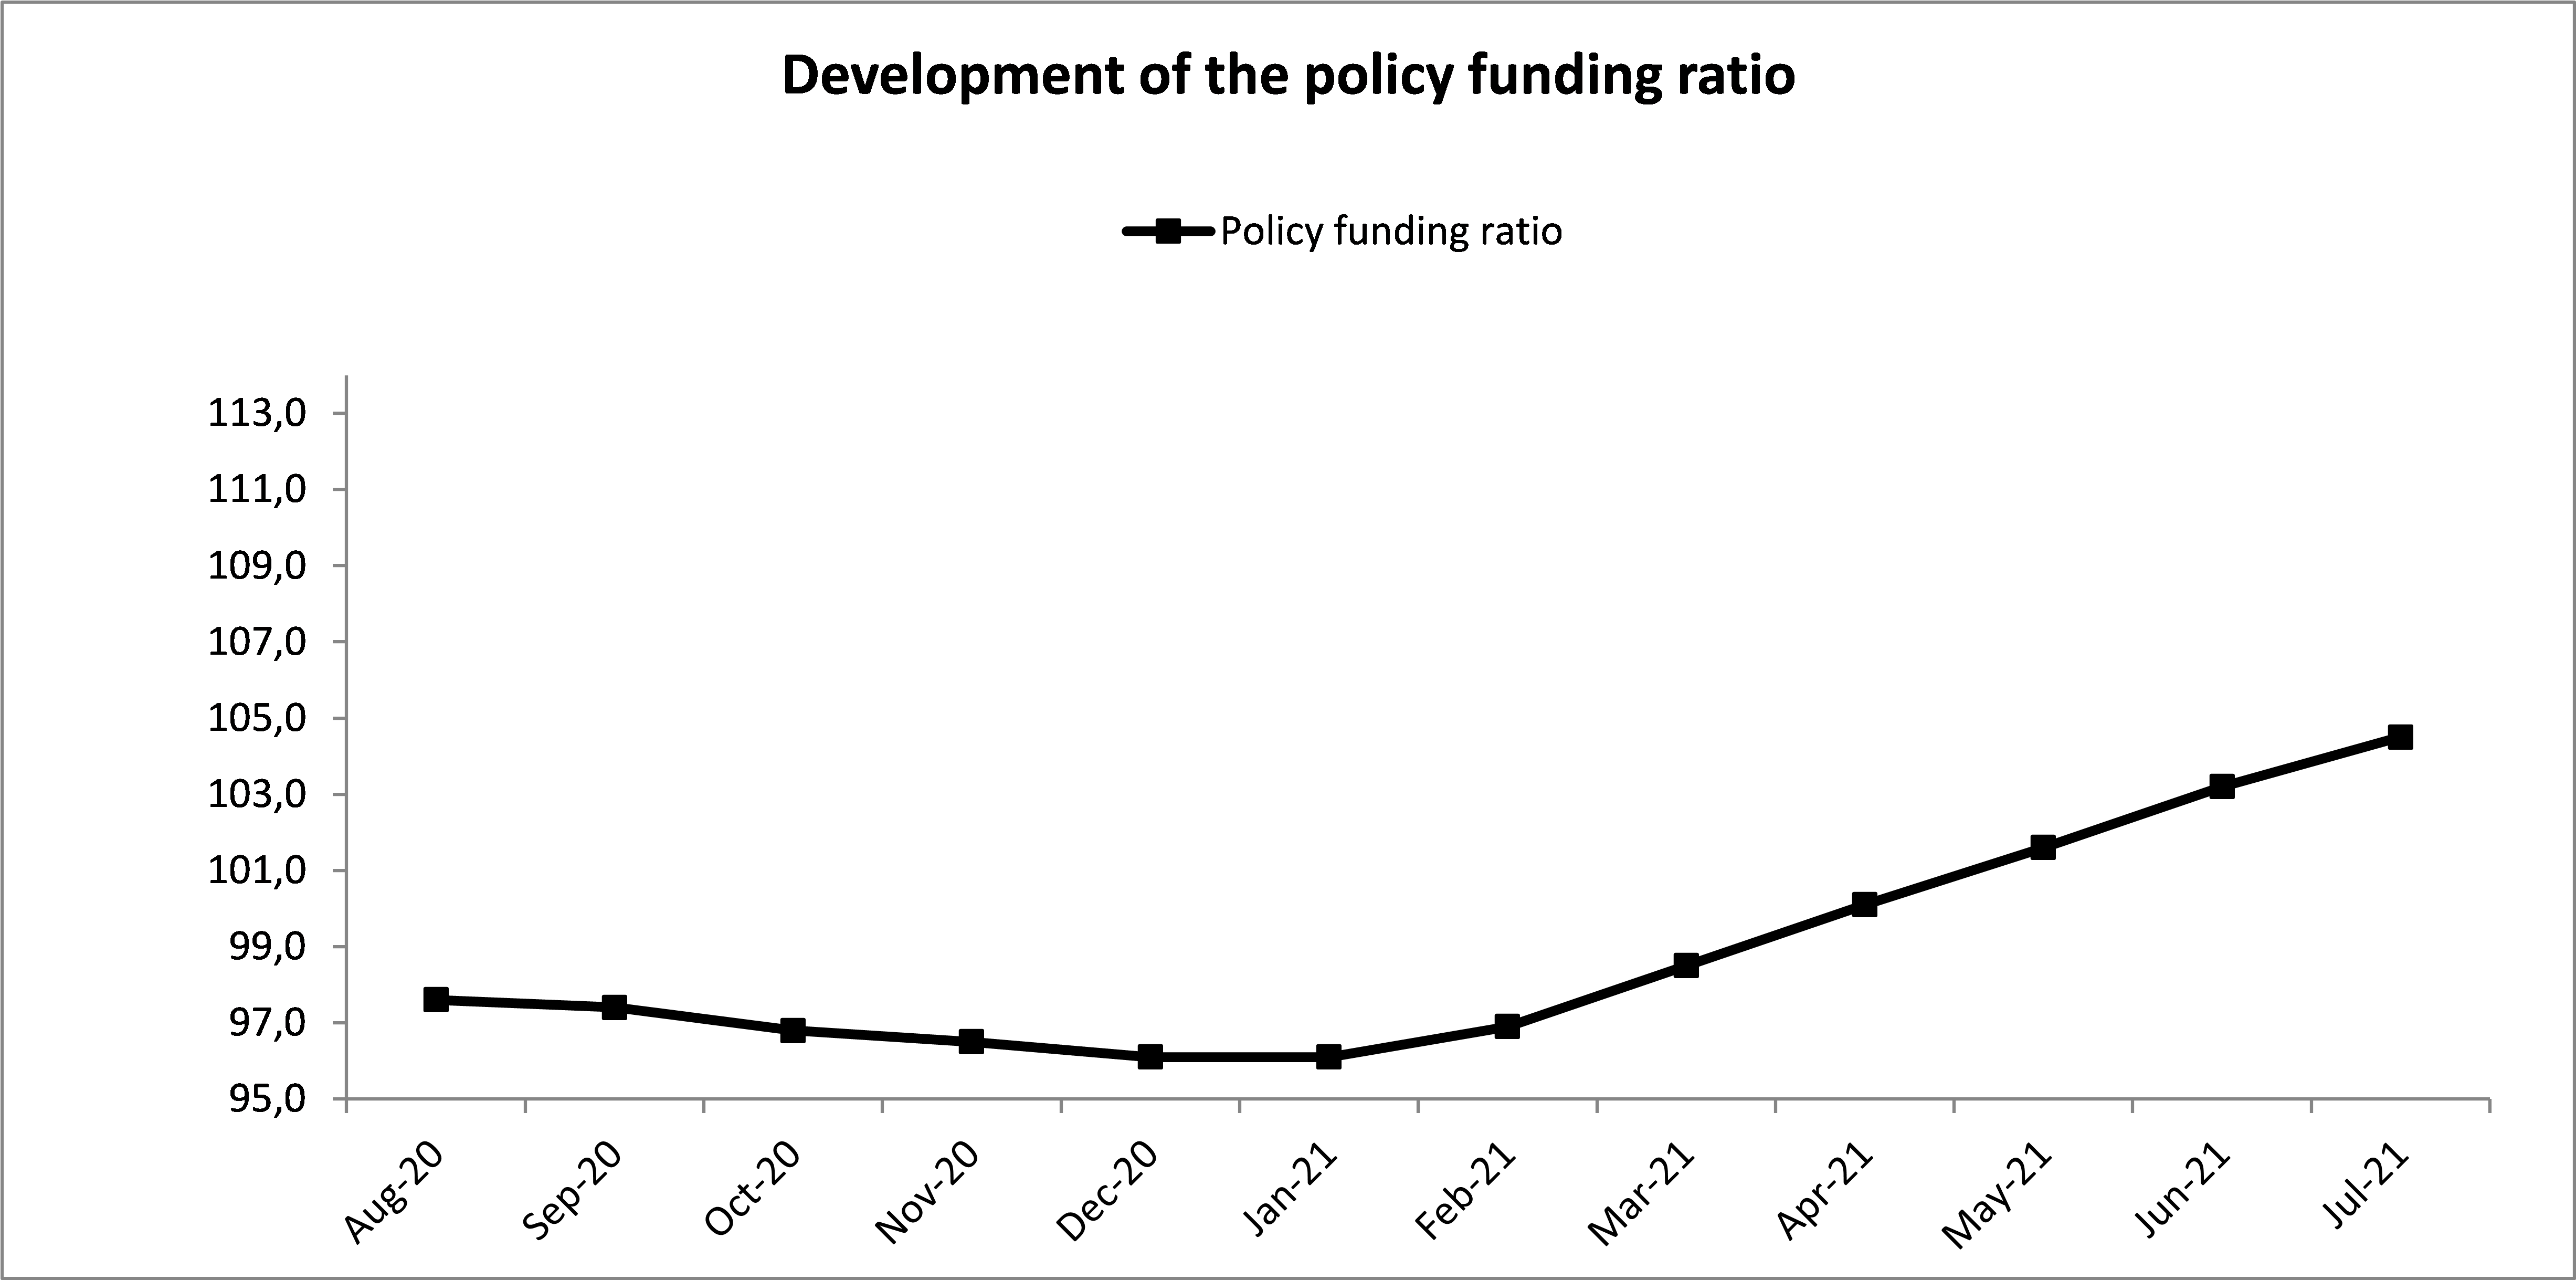 The policy funding ratio as of July, 2021